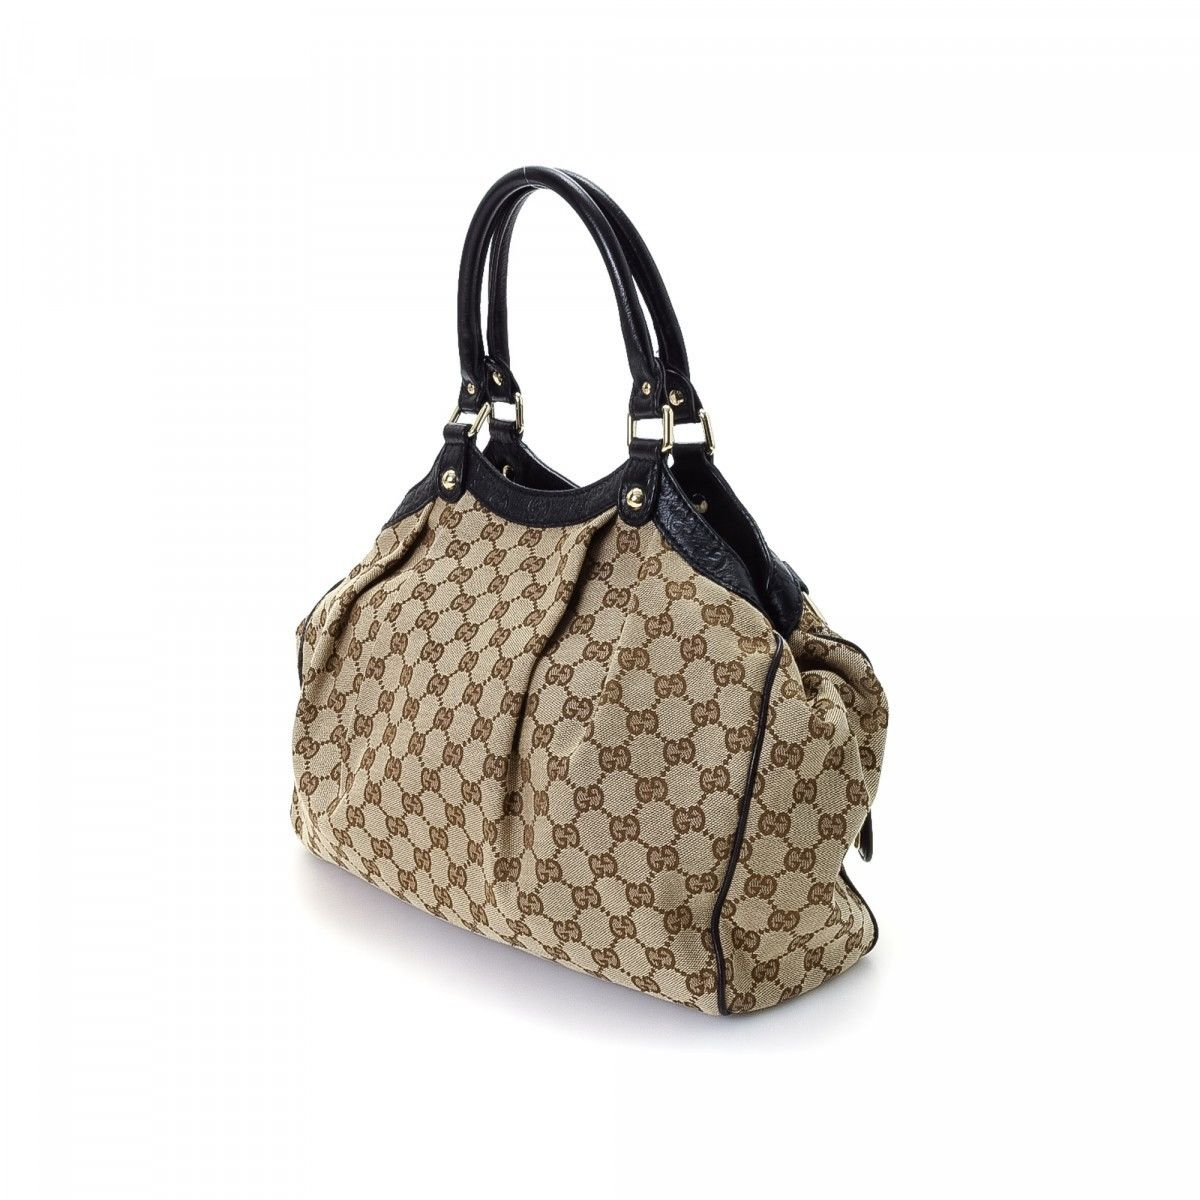 32dde2cf7de3 Gucci GG Canvas Sukey Tote Bag. The authenticity of this vintage Gucci  Sukey Bag tote is guaranteed by LXRandCo.